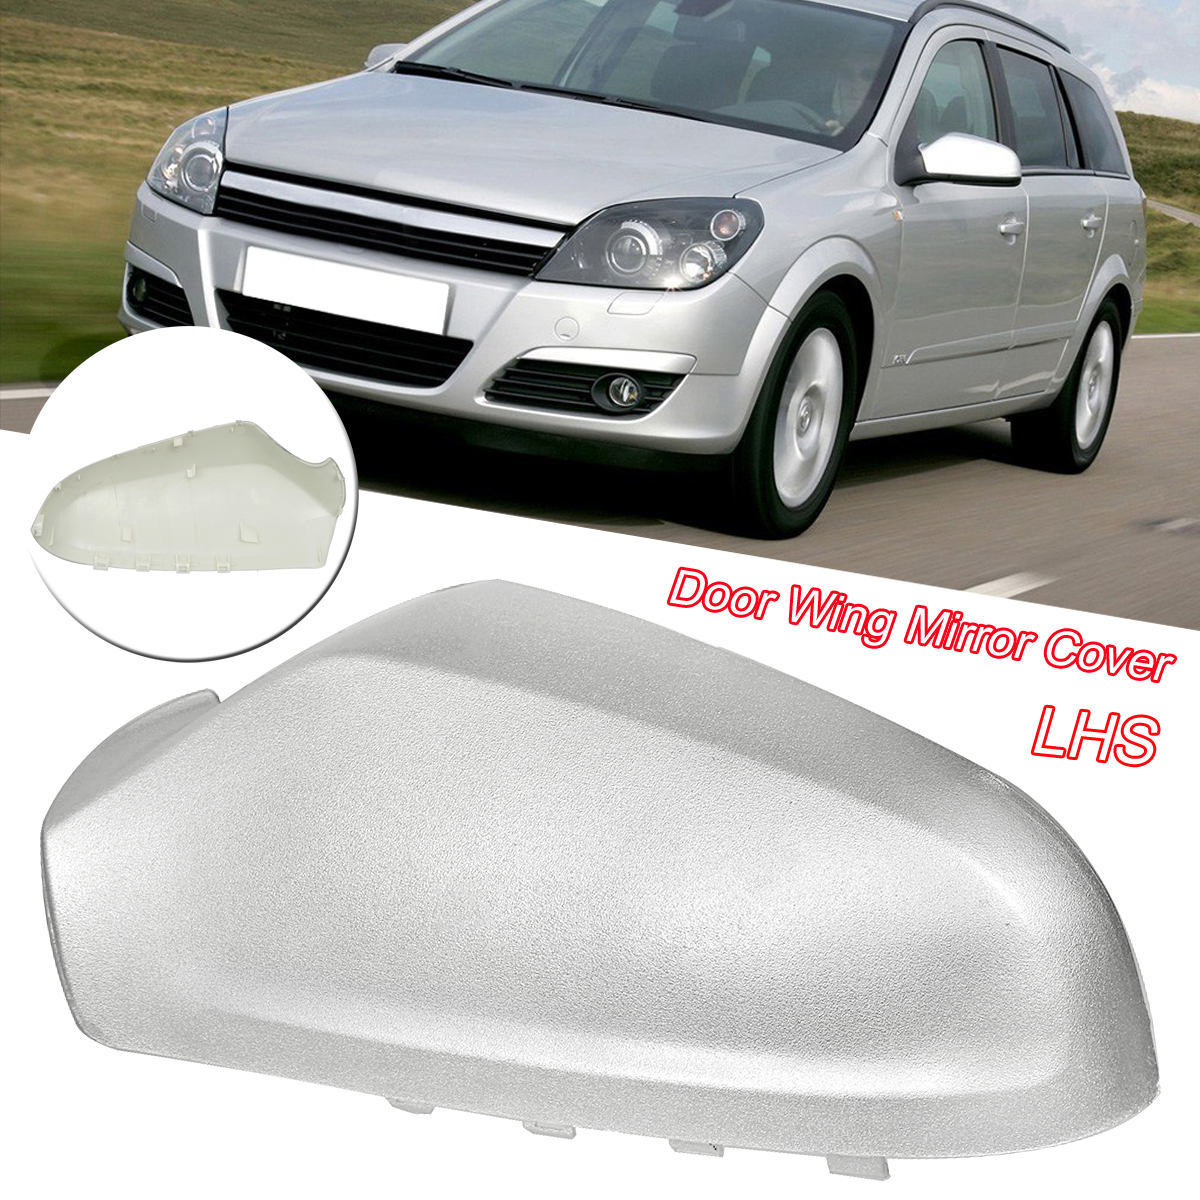 New Car Rearview Mirrors Cover for Vauxhall Astra H 05 ...